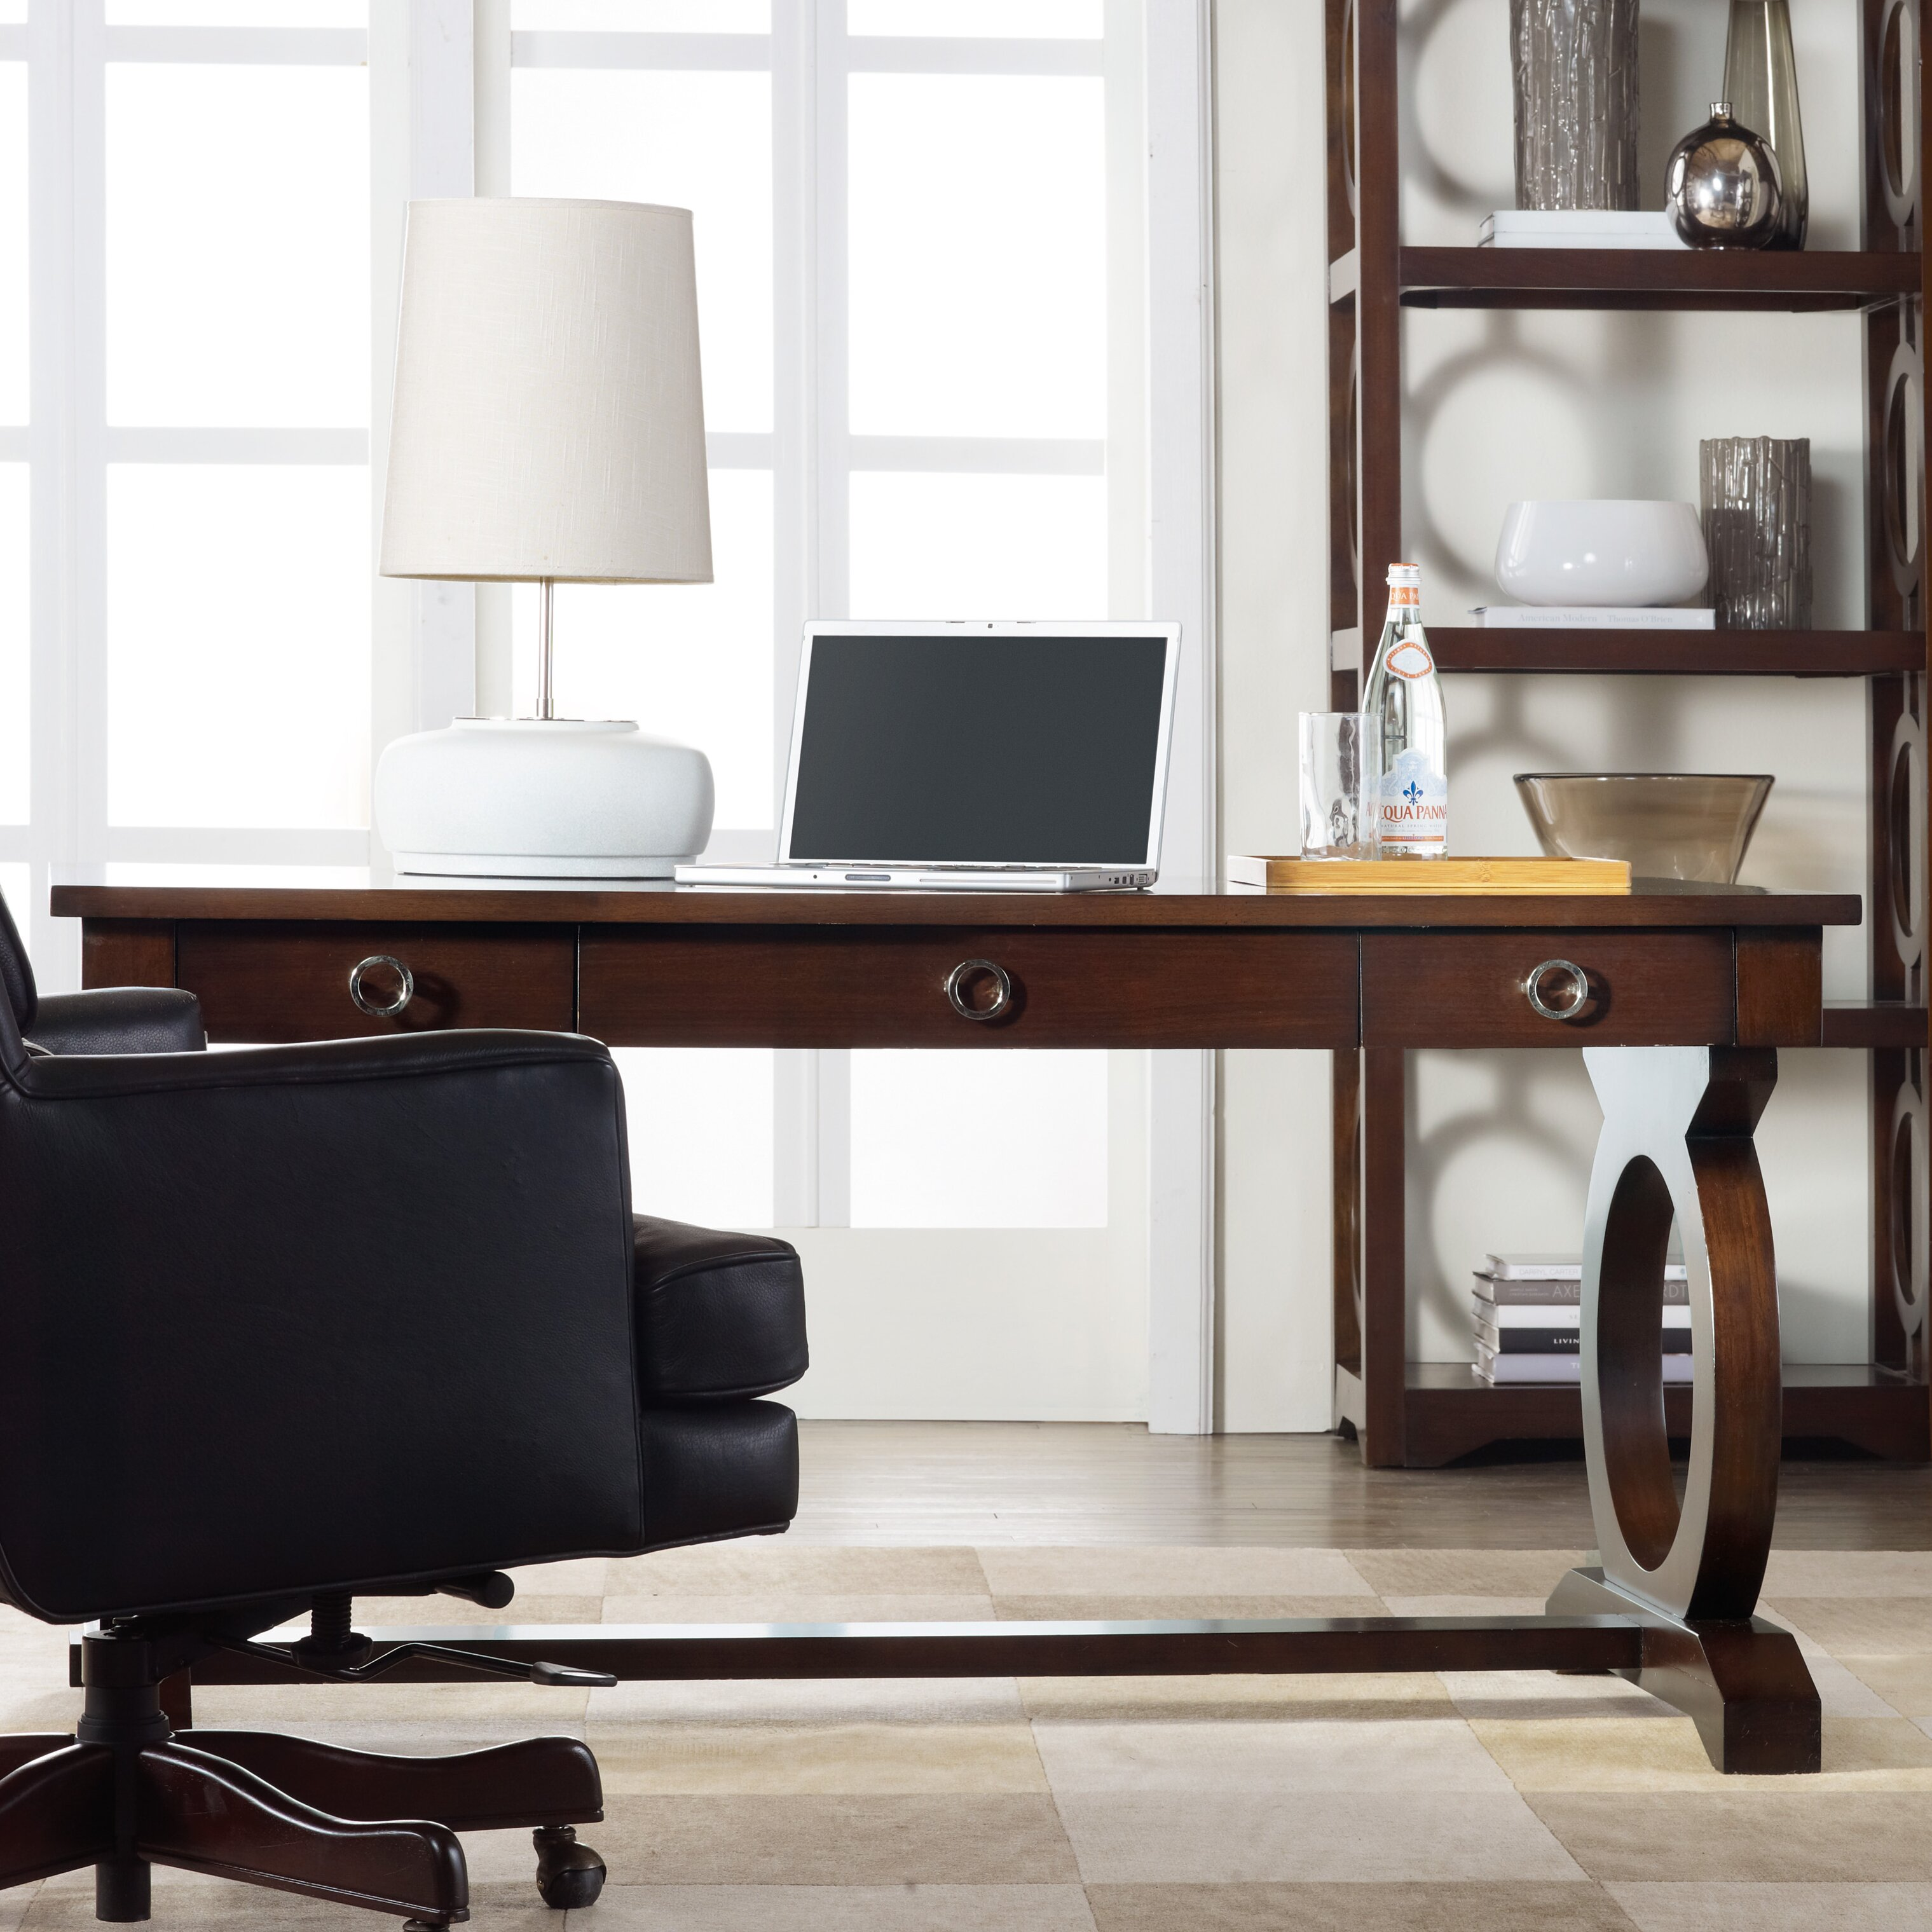 Hooker Furniture Kinsey Computer Desk With Keyboard Tray